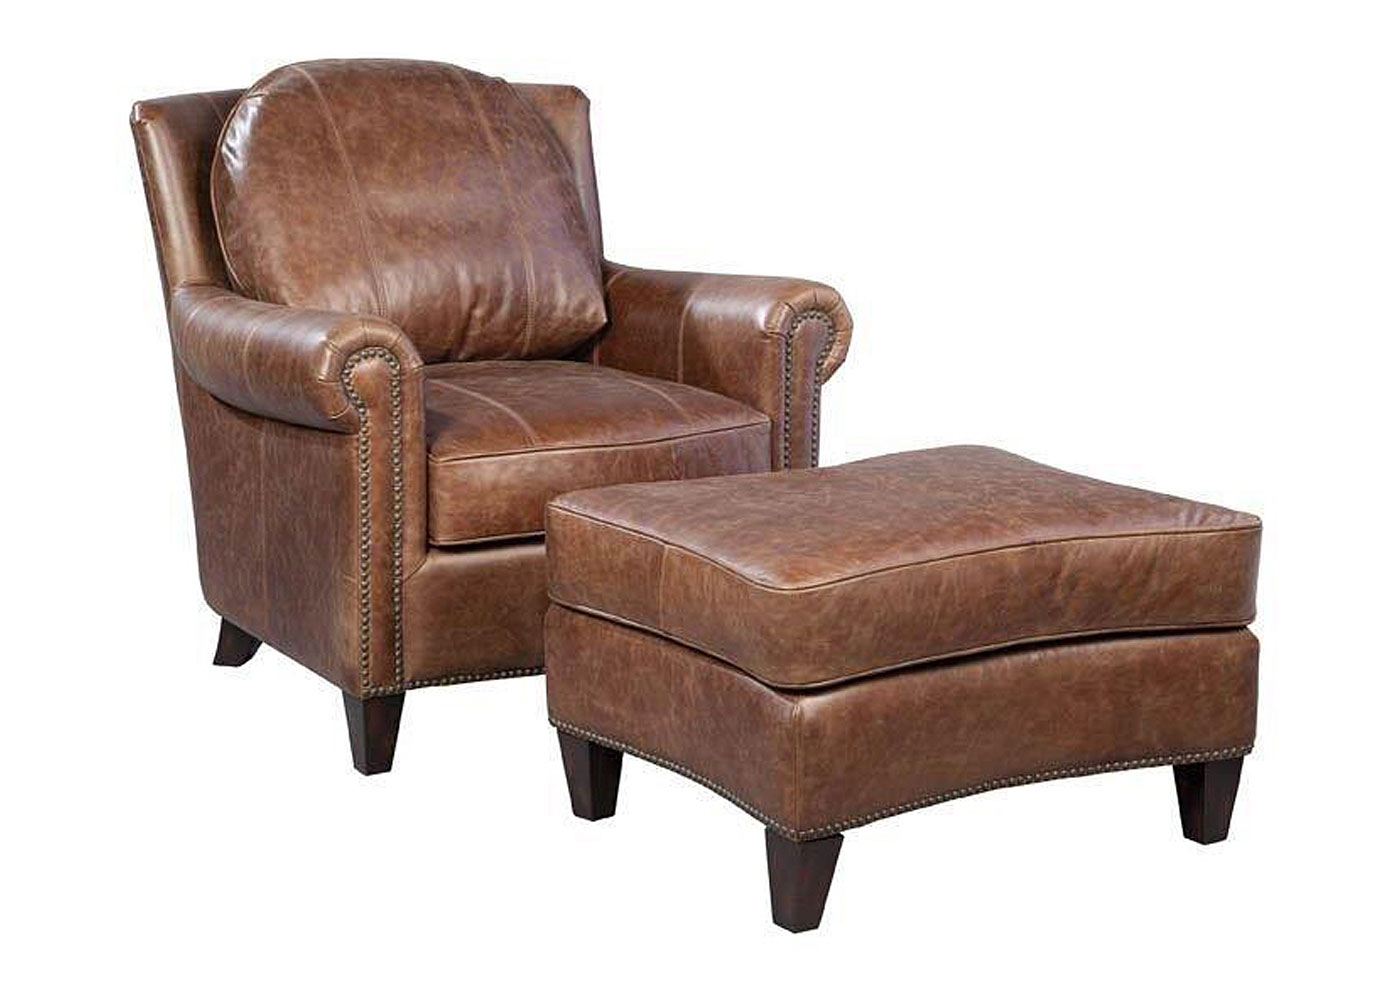 vintage brown leather accent chair with nails  club furniture - mathis pillow back leather accent chair clubfurniture